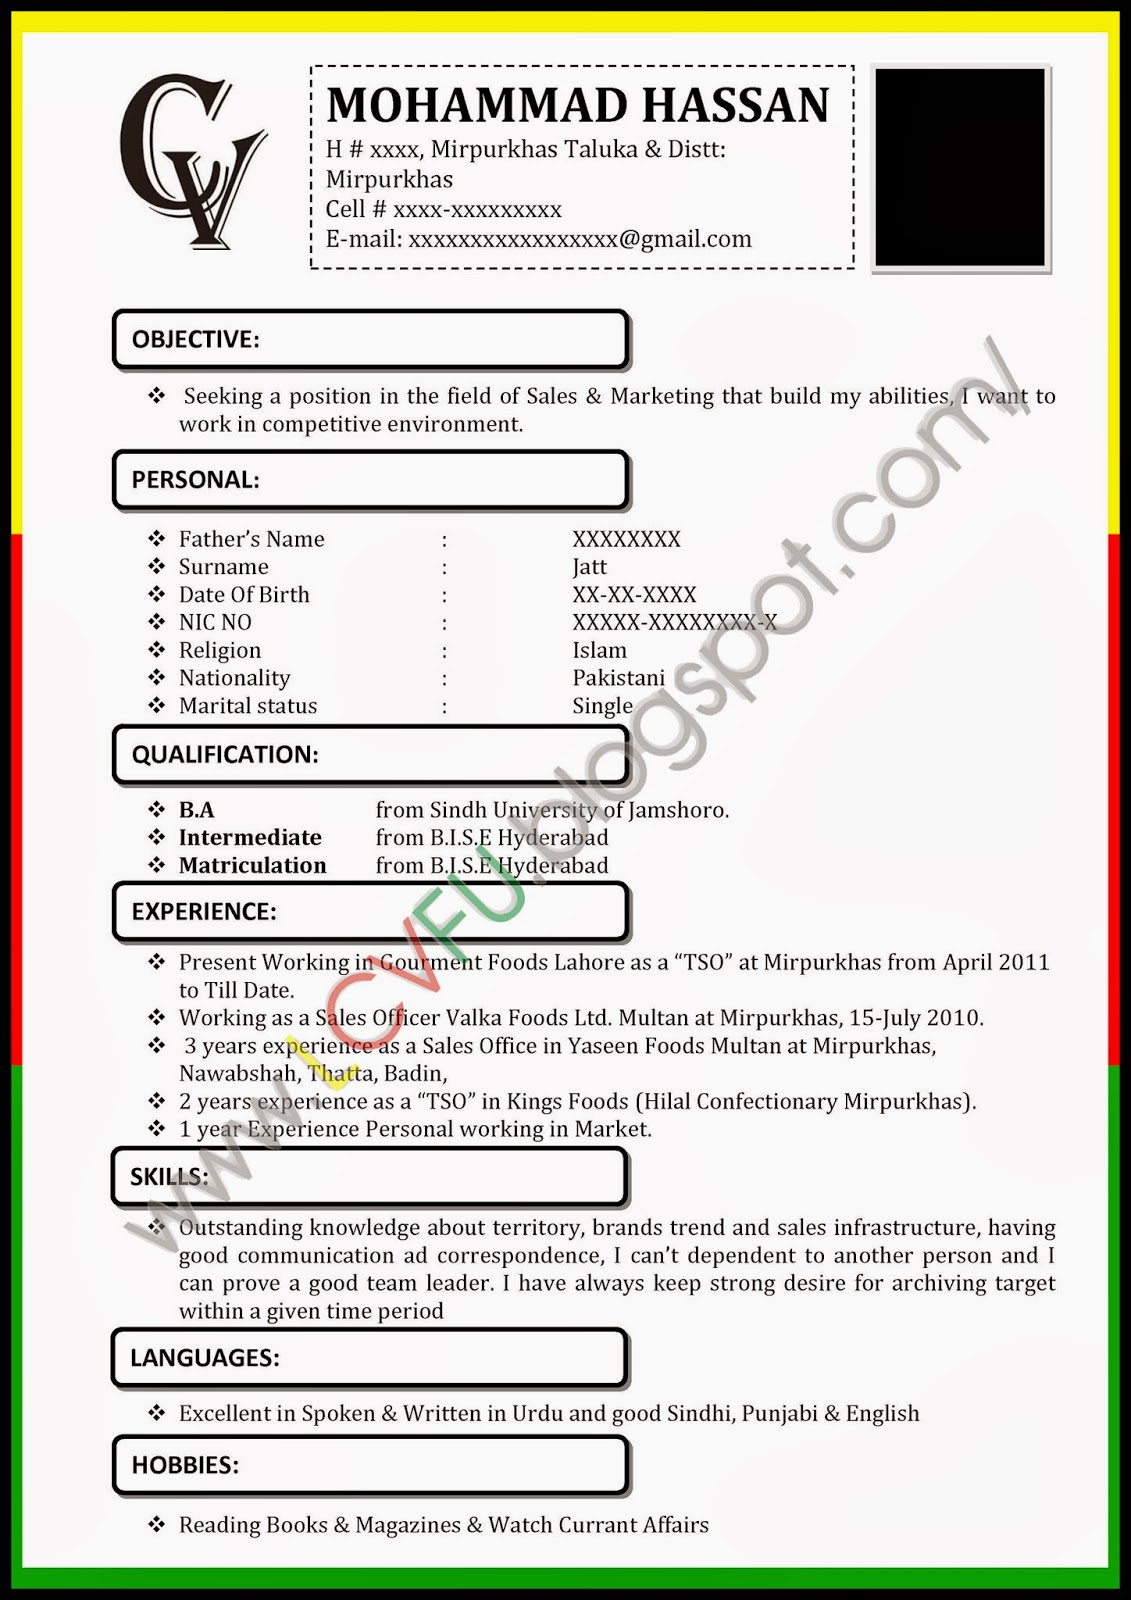 cv template gov sample customer service resume cv template gov national careers service cv builder format latest cv format 2014 new cv